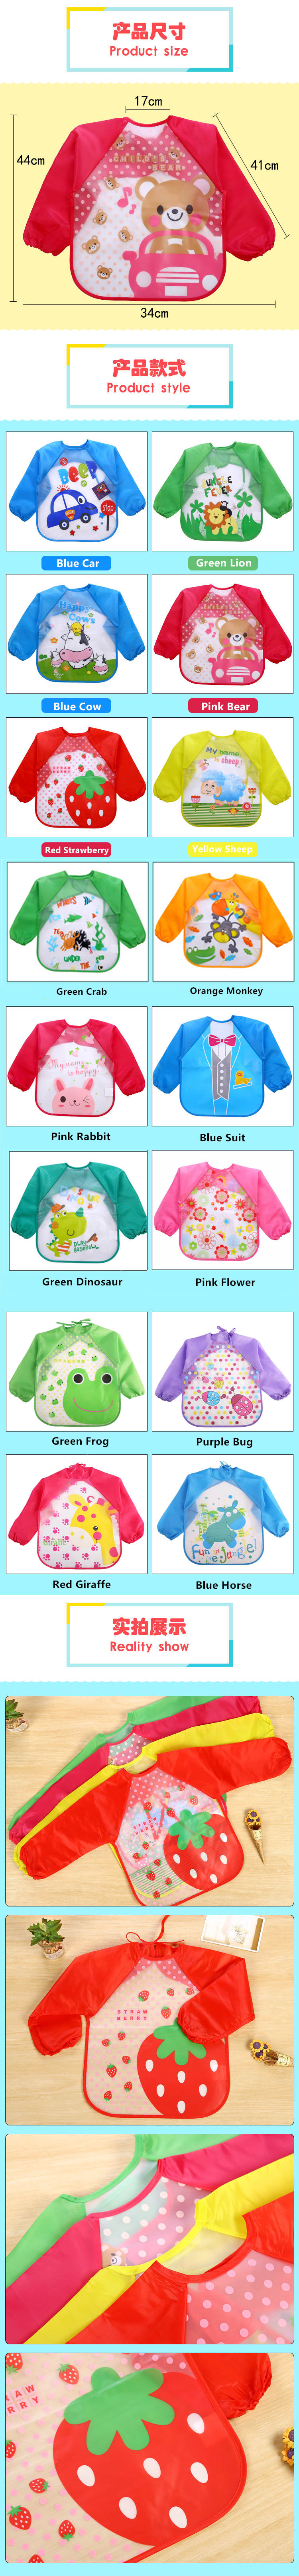 Little B House Waterproof Anti-dressed long sleeve baby bibs -BB06-Green Frog